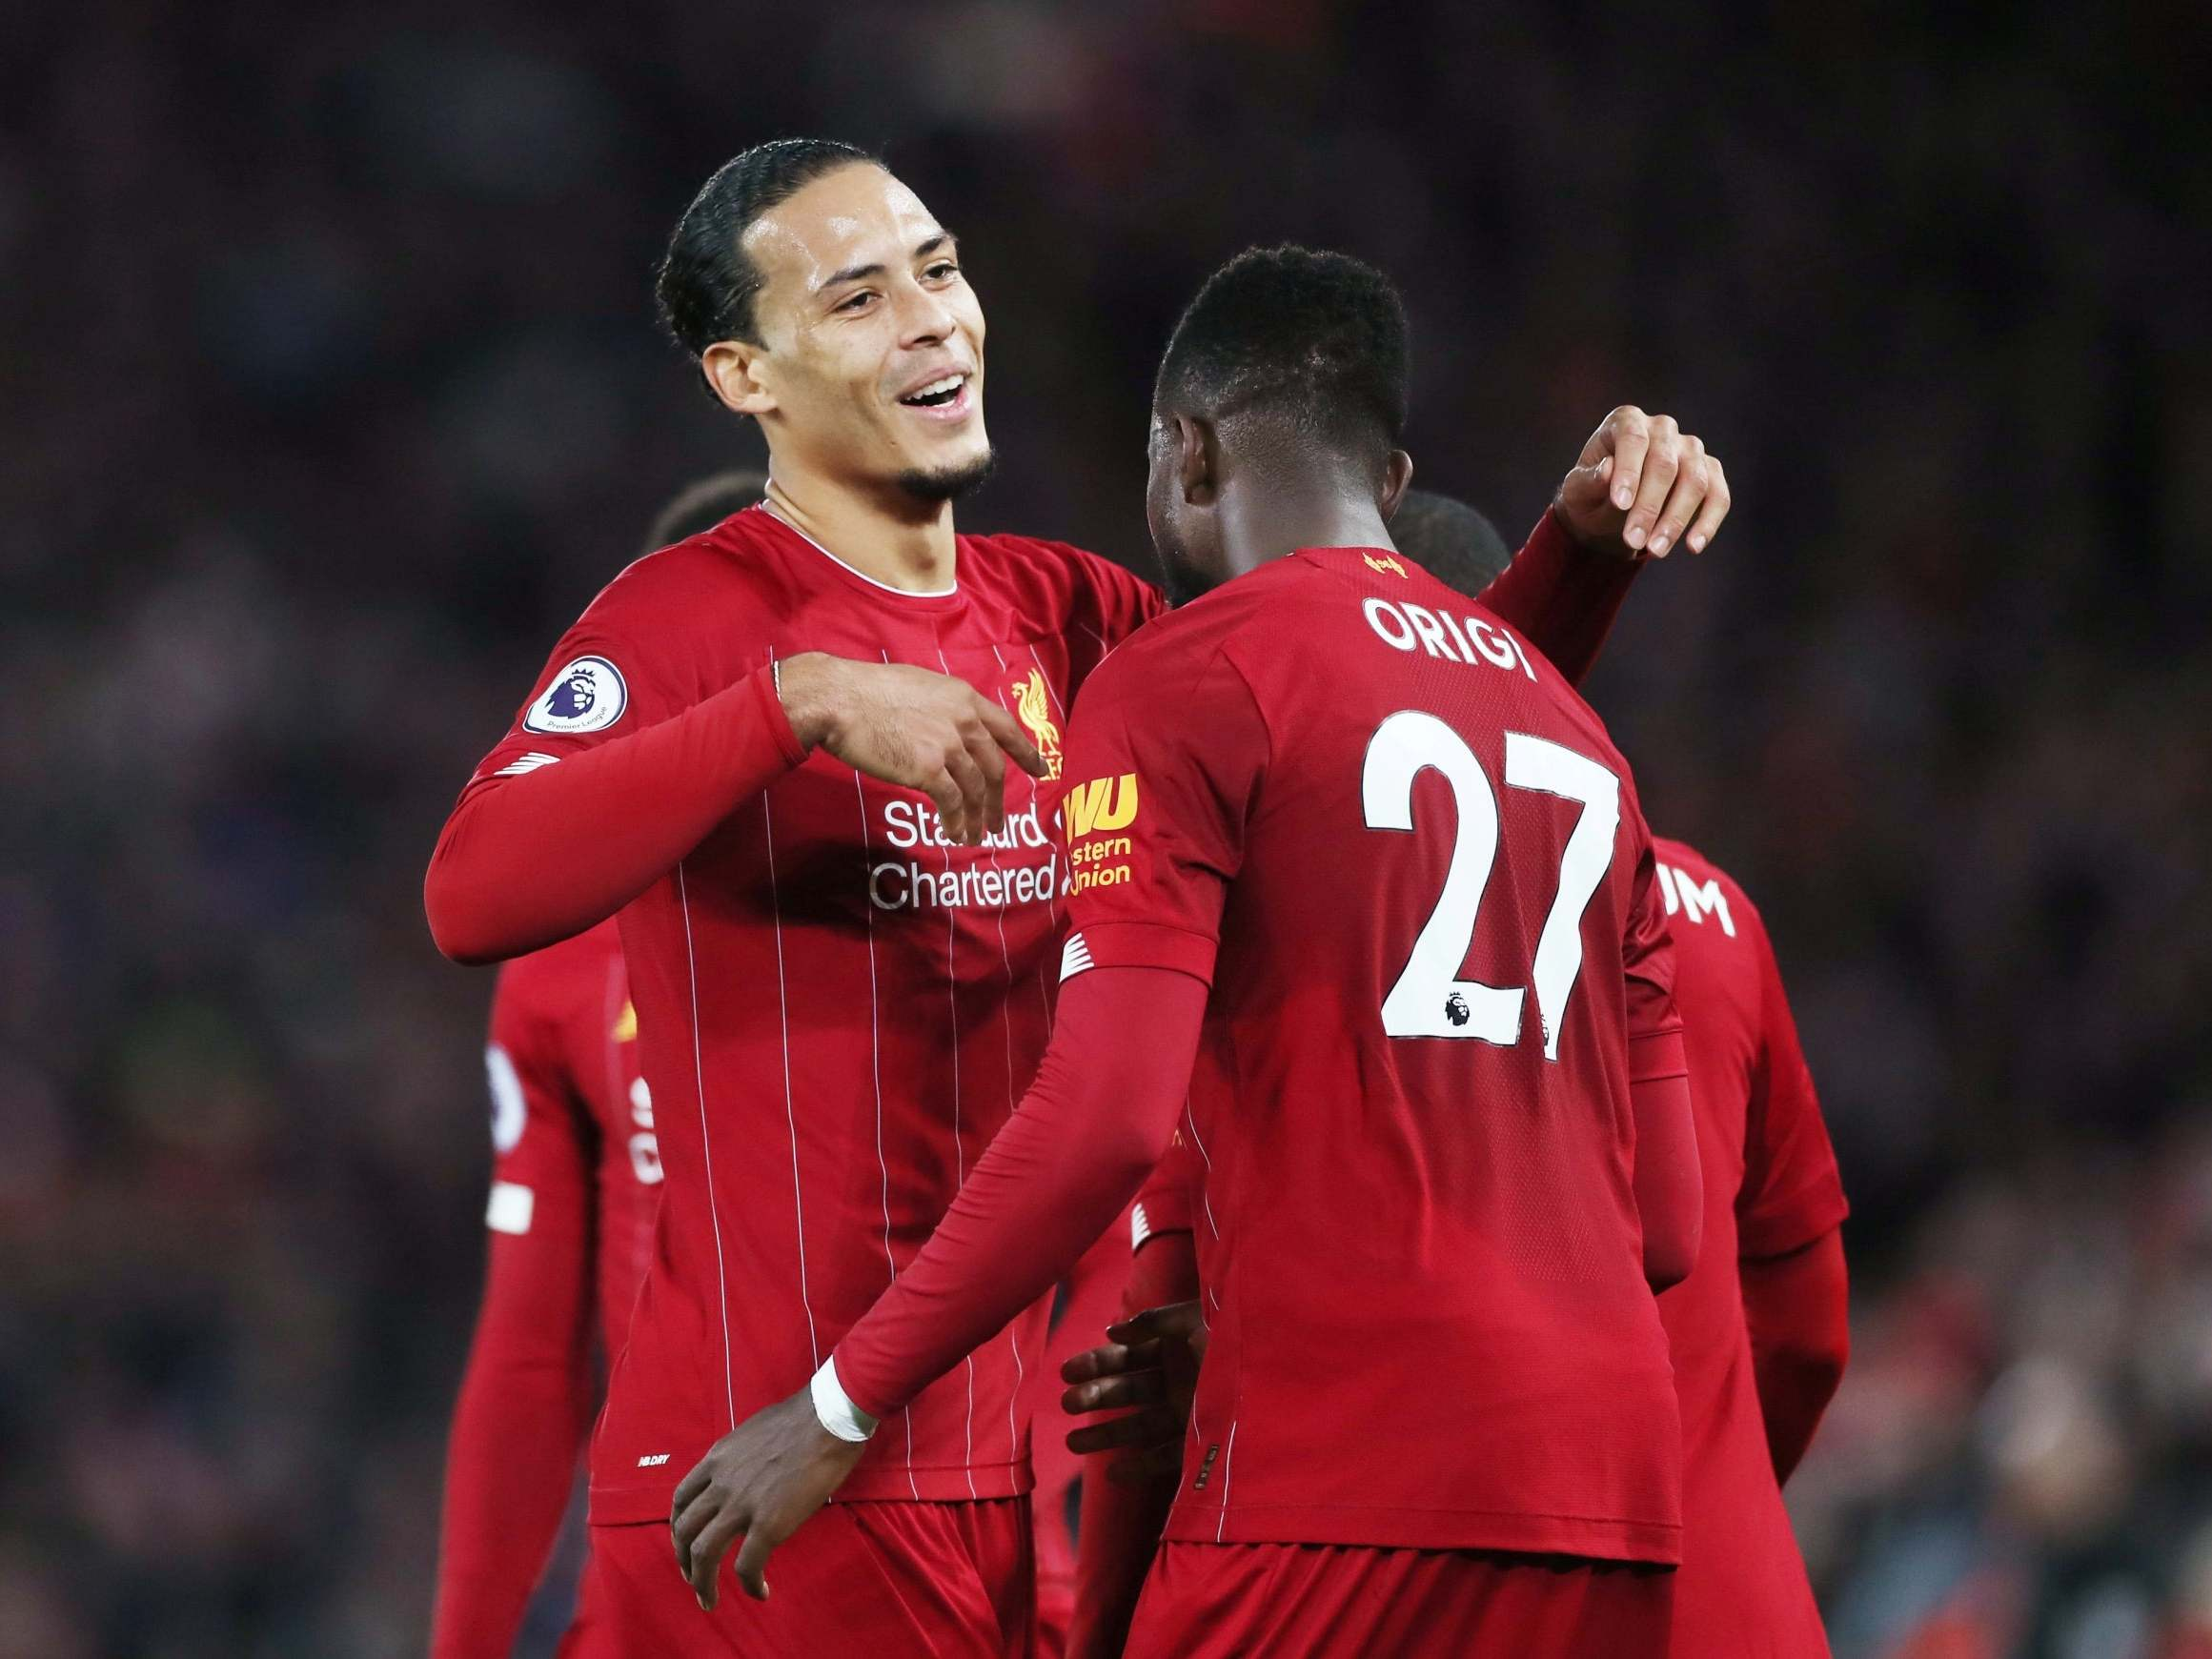 Liverpool vs Everton LIVE: Result and reaction from Premier League fixture tonight